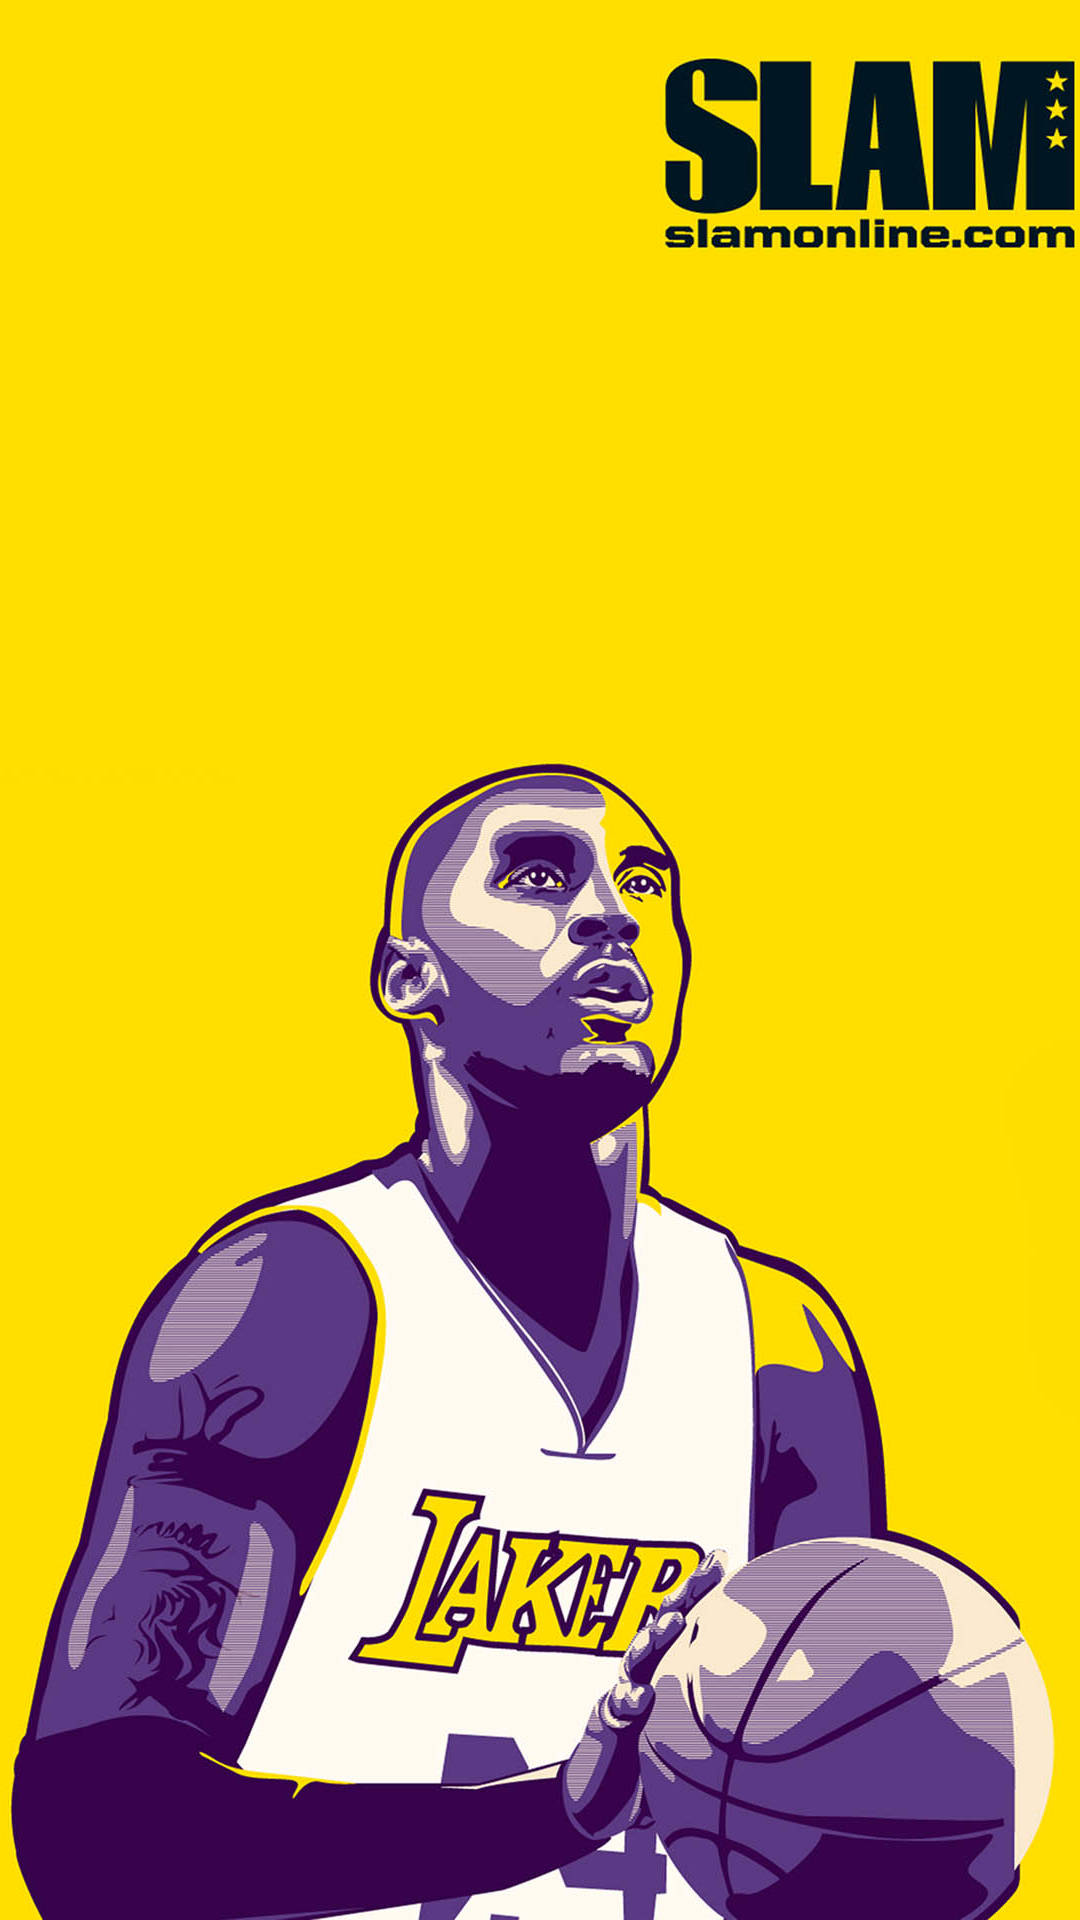 Kobe Bryant Wallpaper Iphone